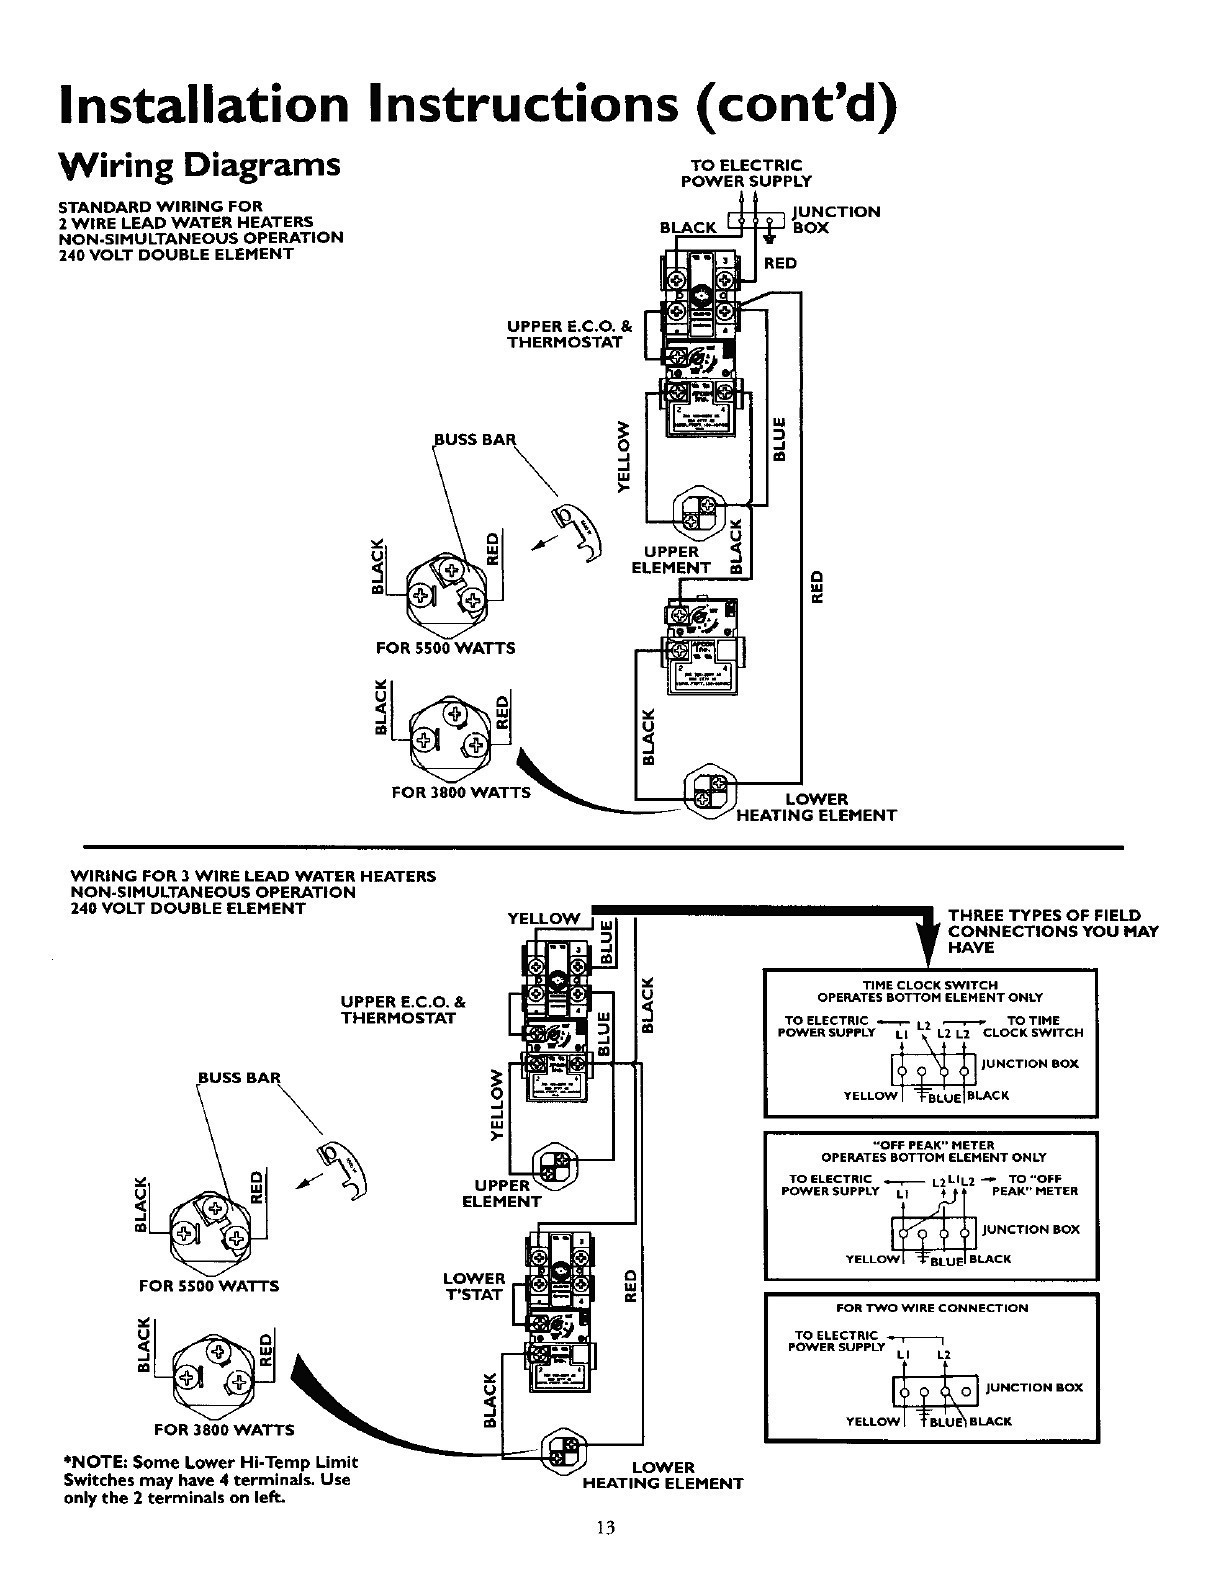 Atwood Excalibur Wiring Diagram Blog About Diagrams Low Temperature Defrost Timer Box Water Heater Parts Intertherm Ac